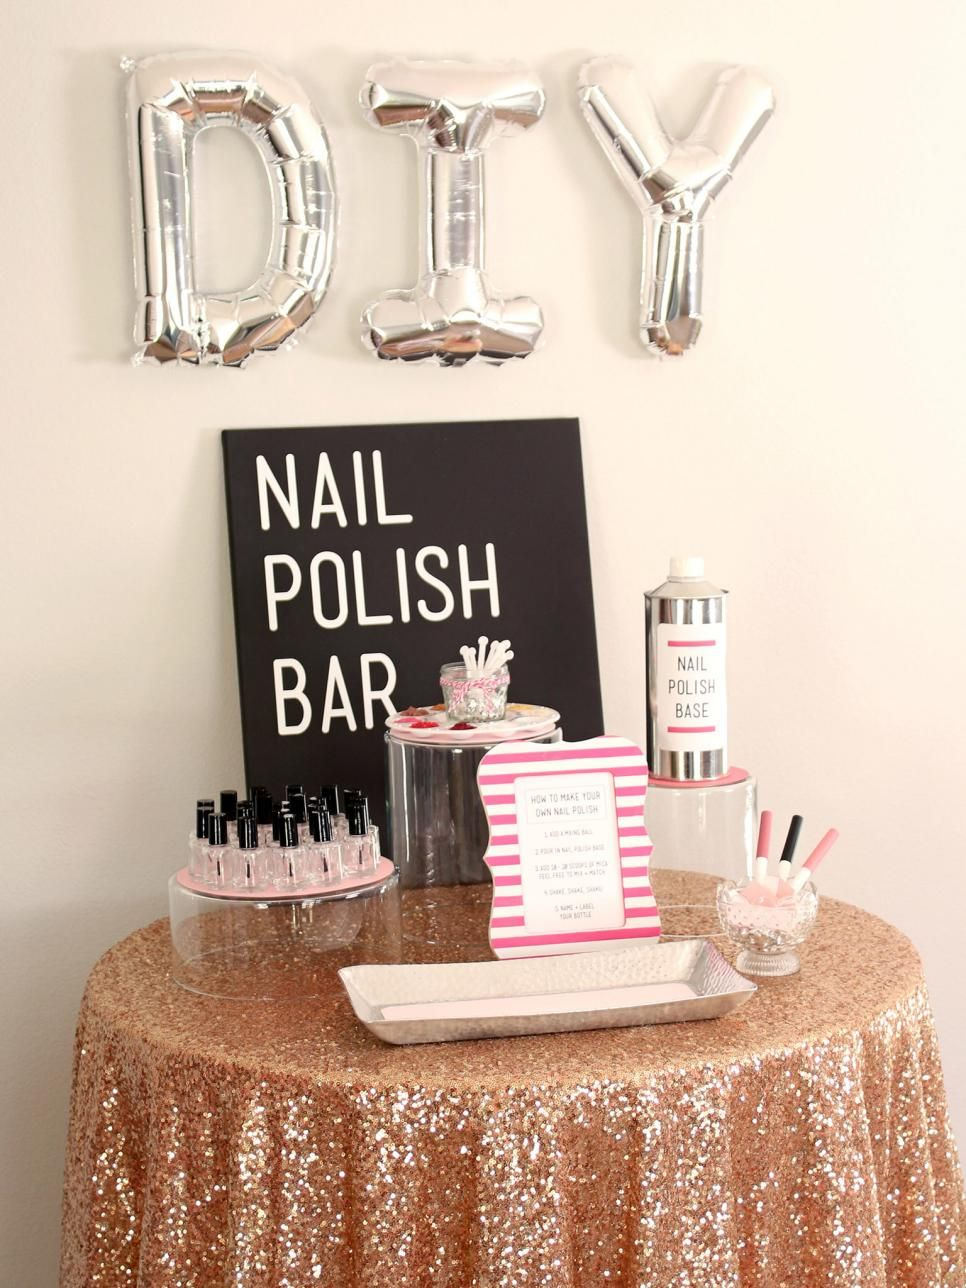 20 new ideas for amazing bachelor and bachelorette parties   diy